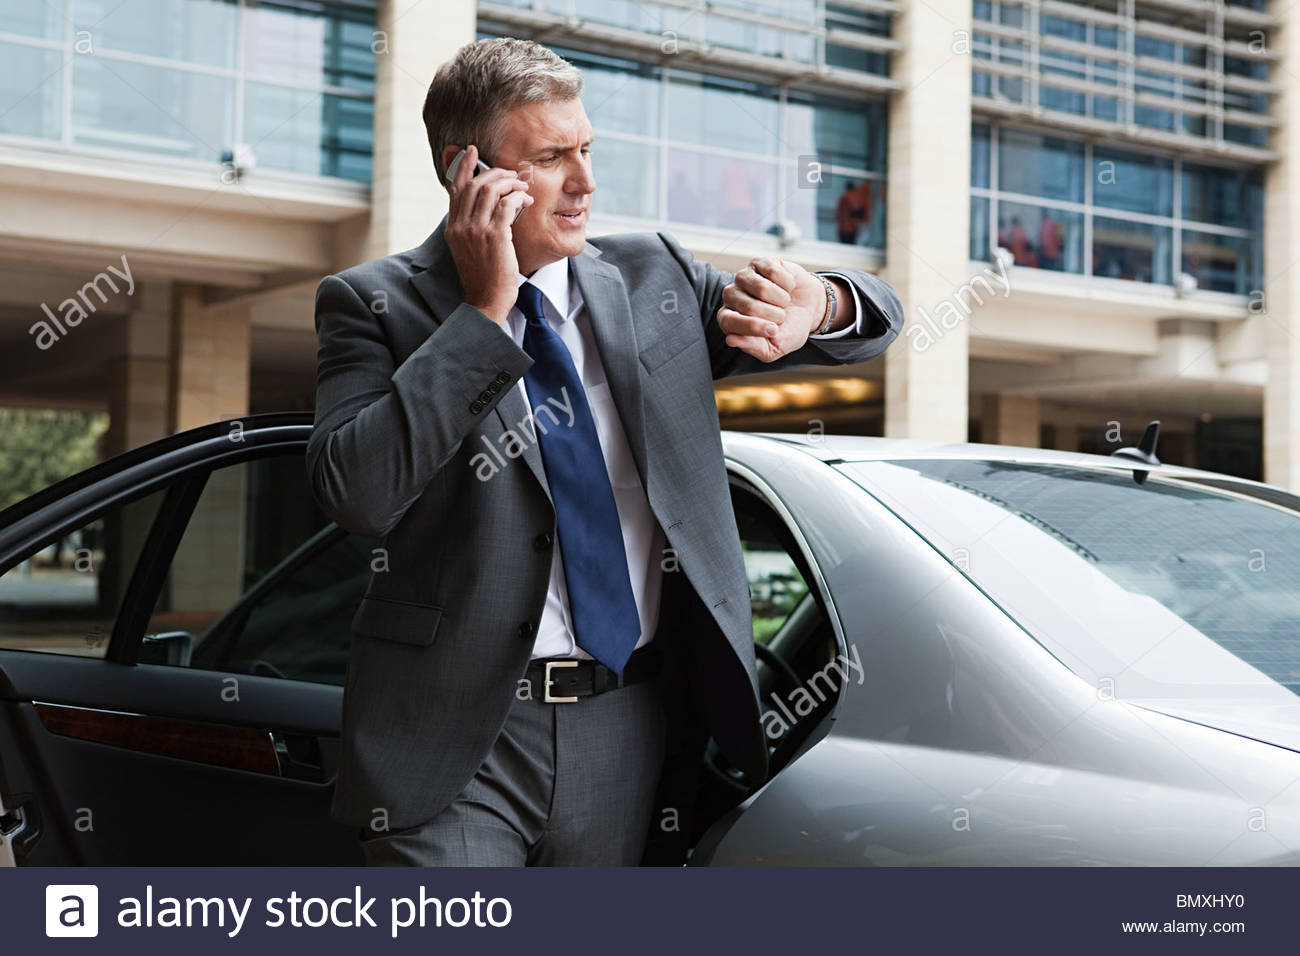 Businessman on cellphone looking at watch - Stock Image